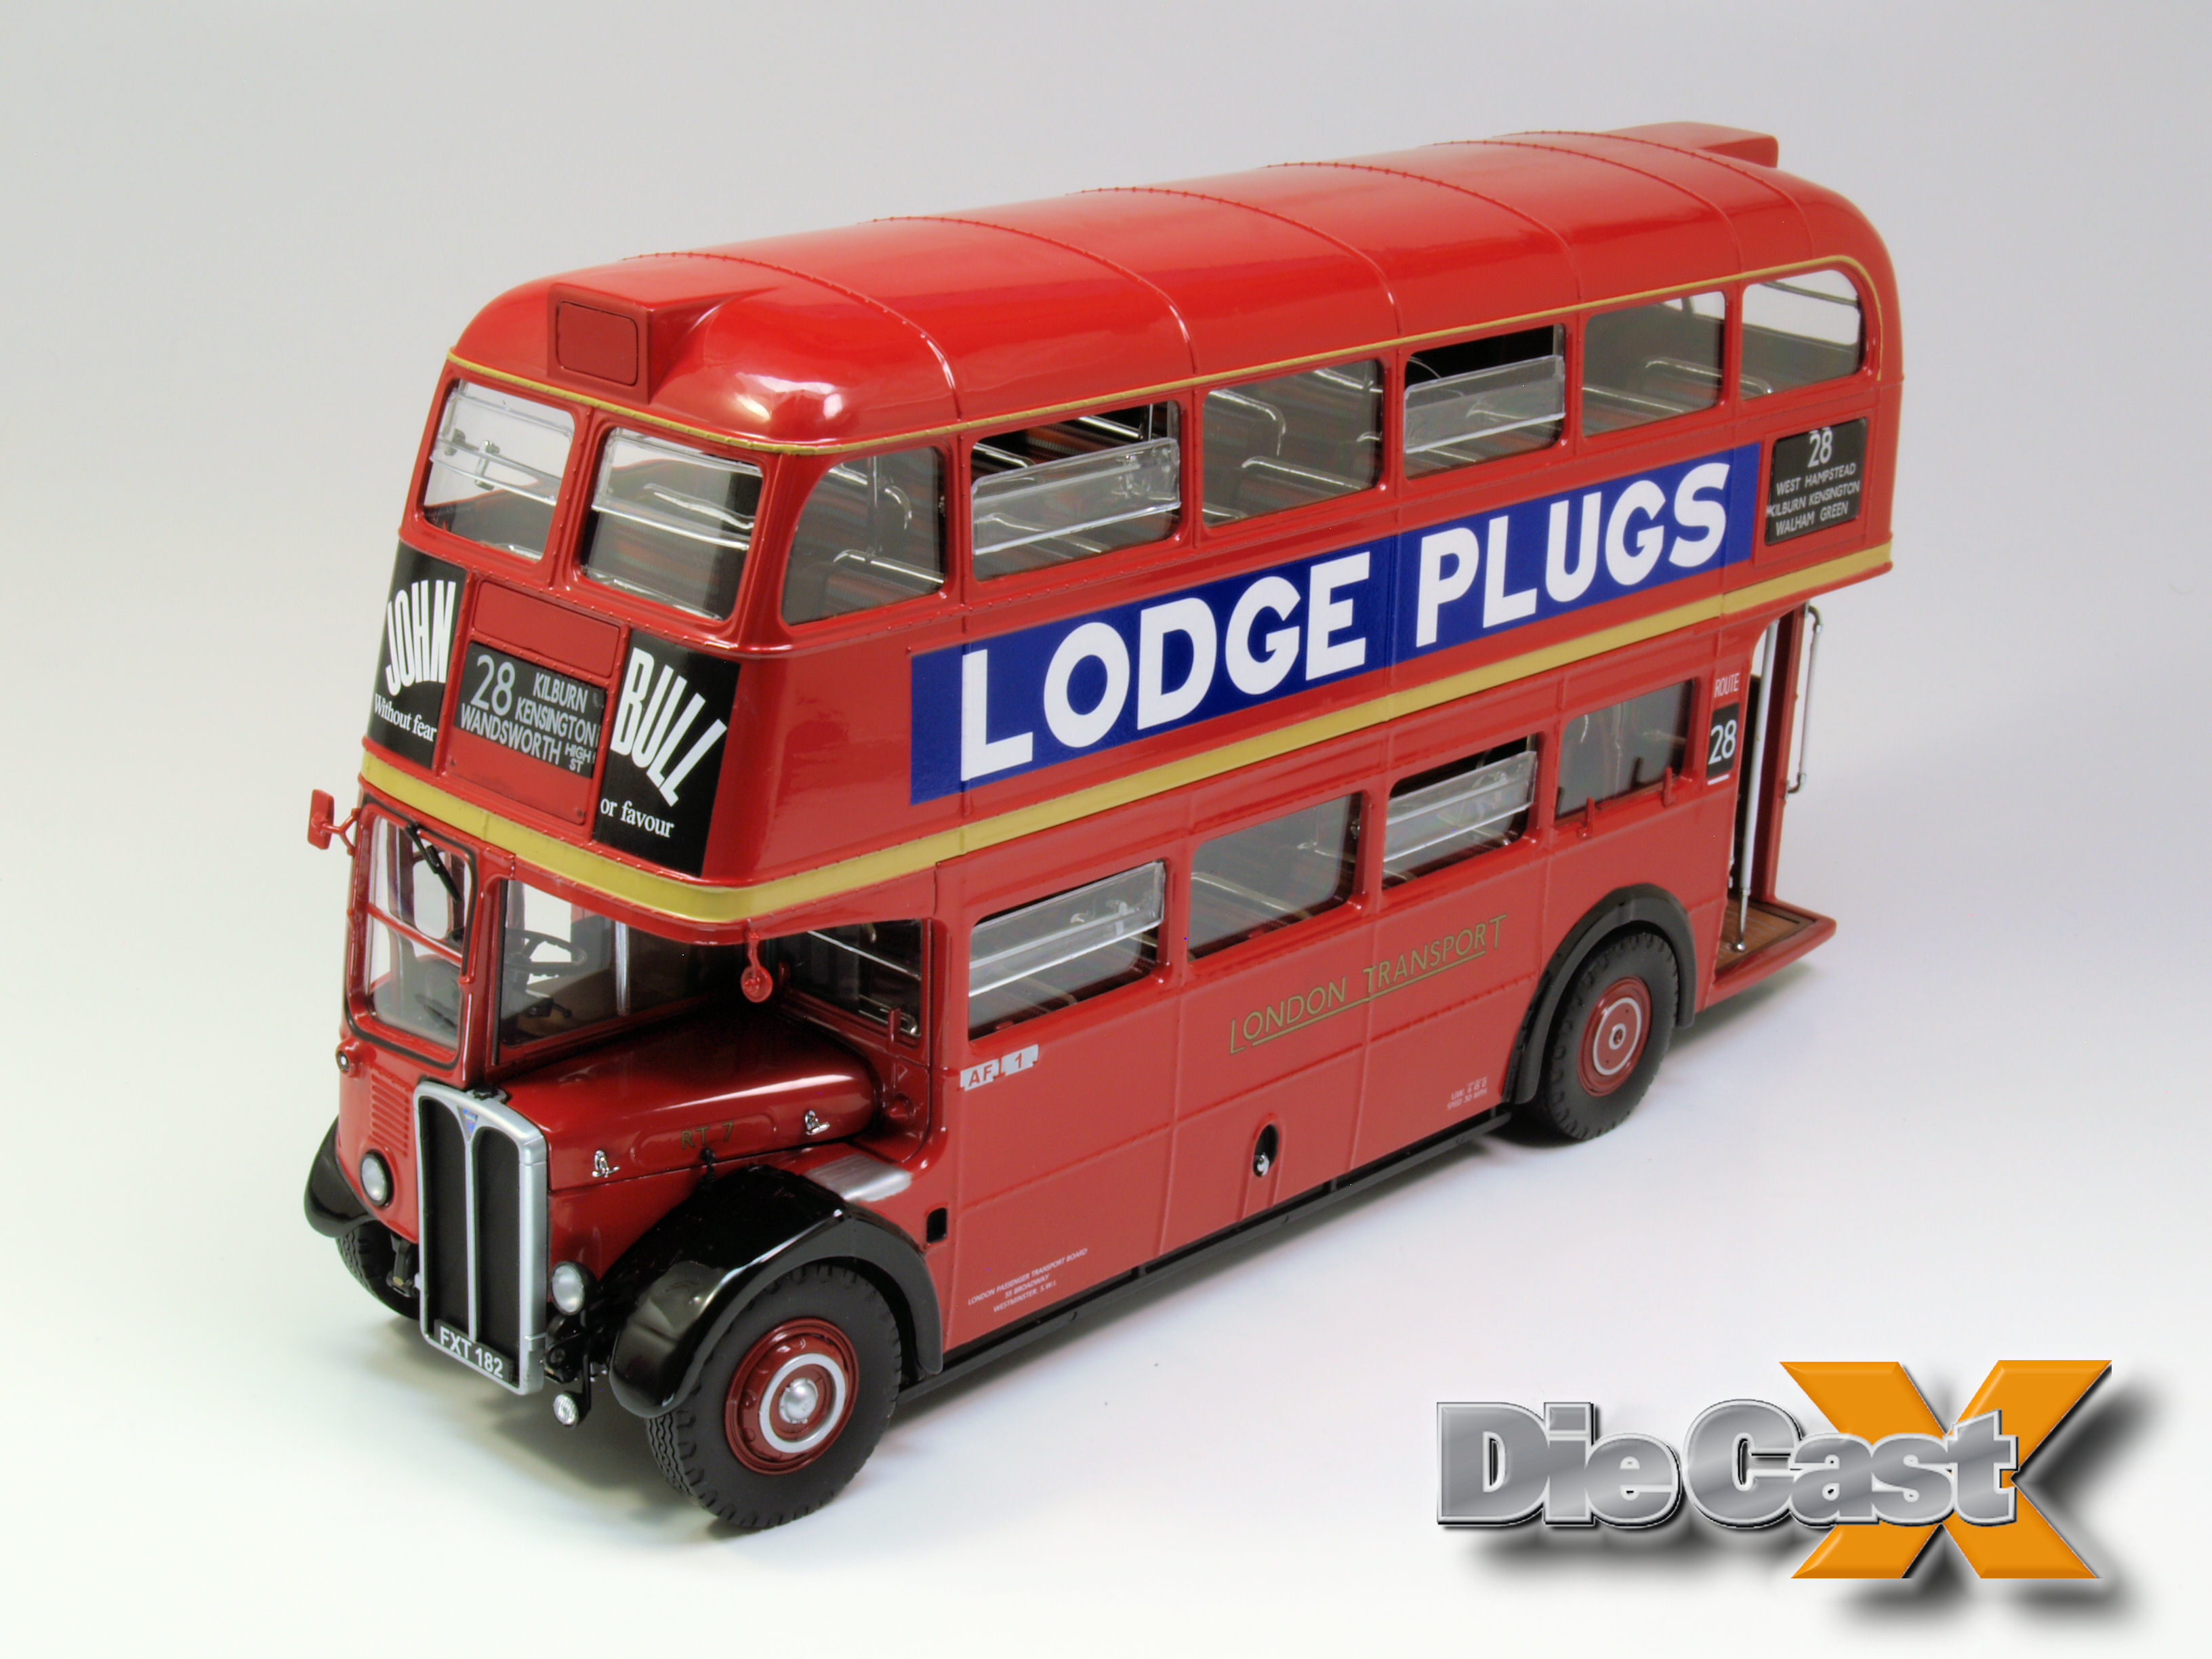 Sunstar 1:24 AEC Regent Bus: Double Decker Fun